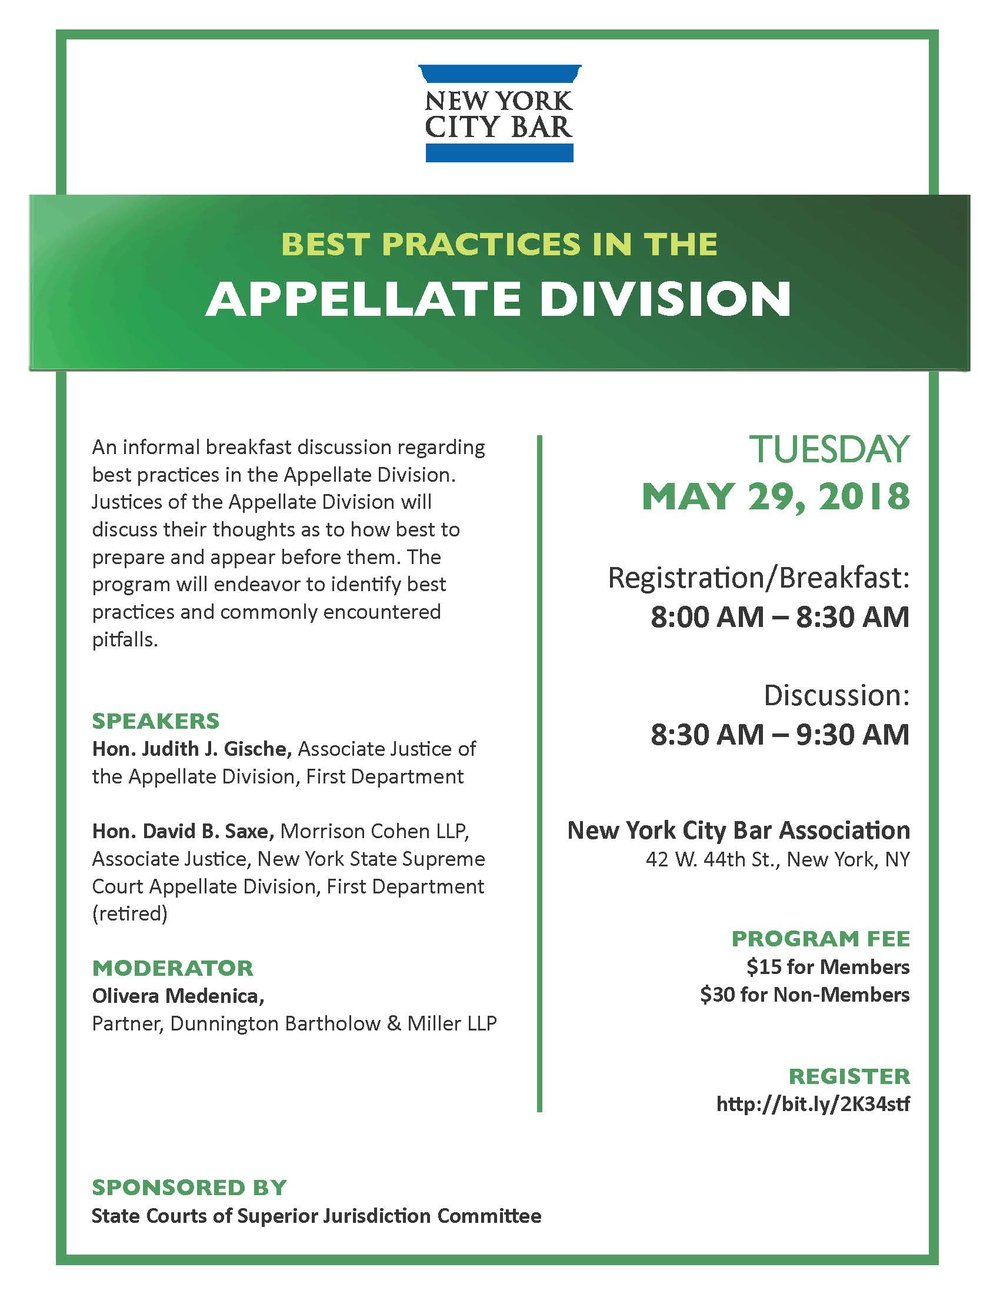 Appellate Division event 2018 flyer.jpg